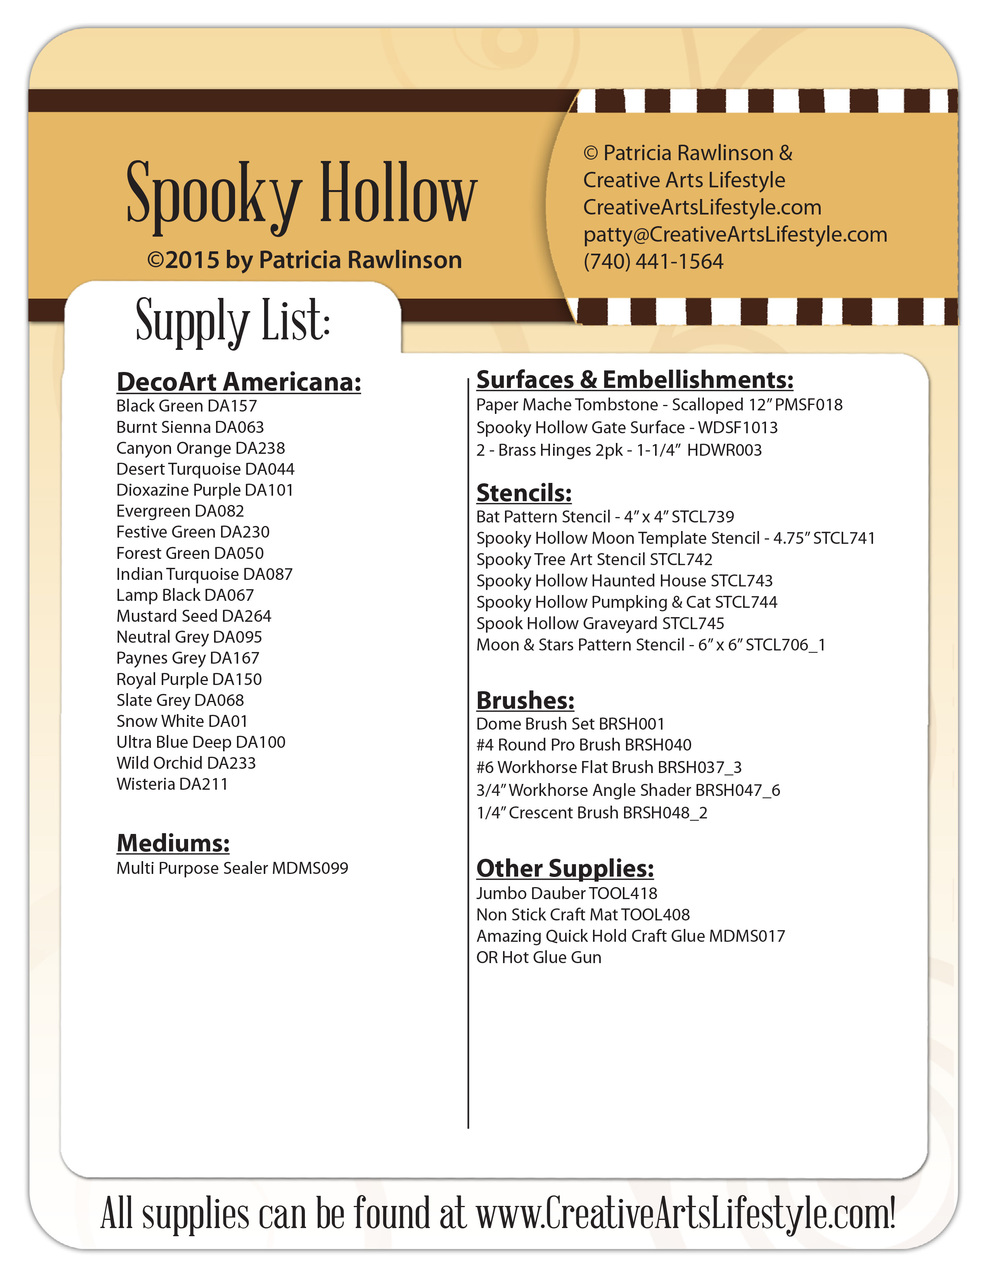 Spooky Hollow - E-Packet - Patricia Rawlinson